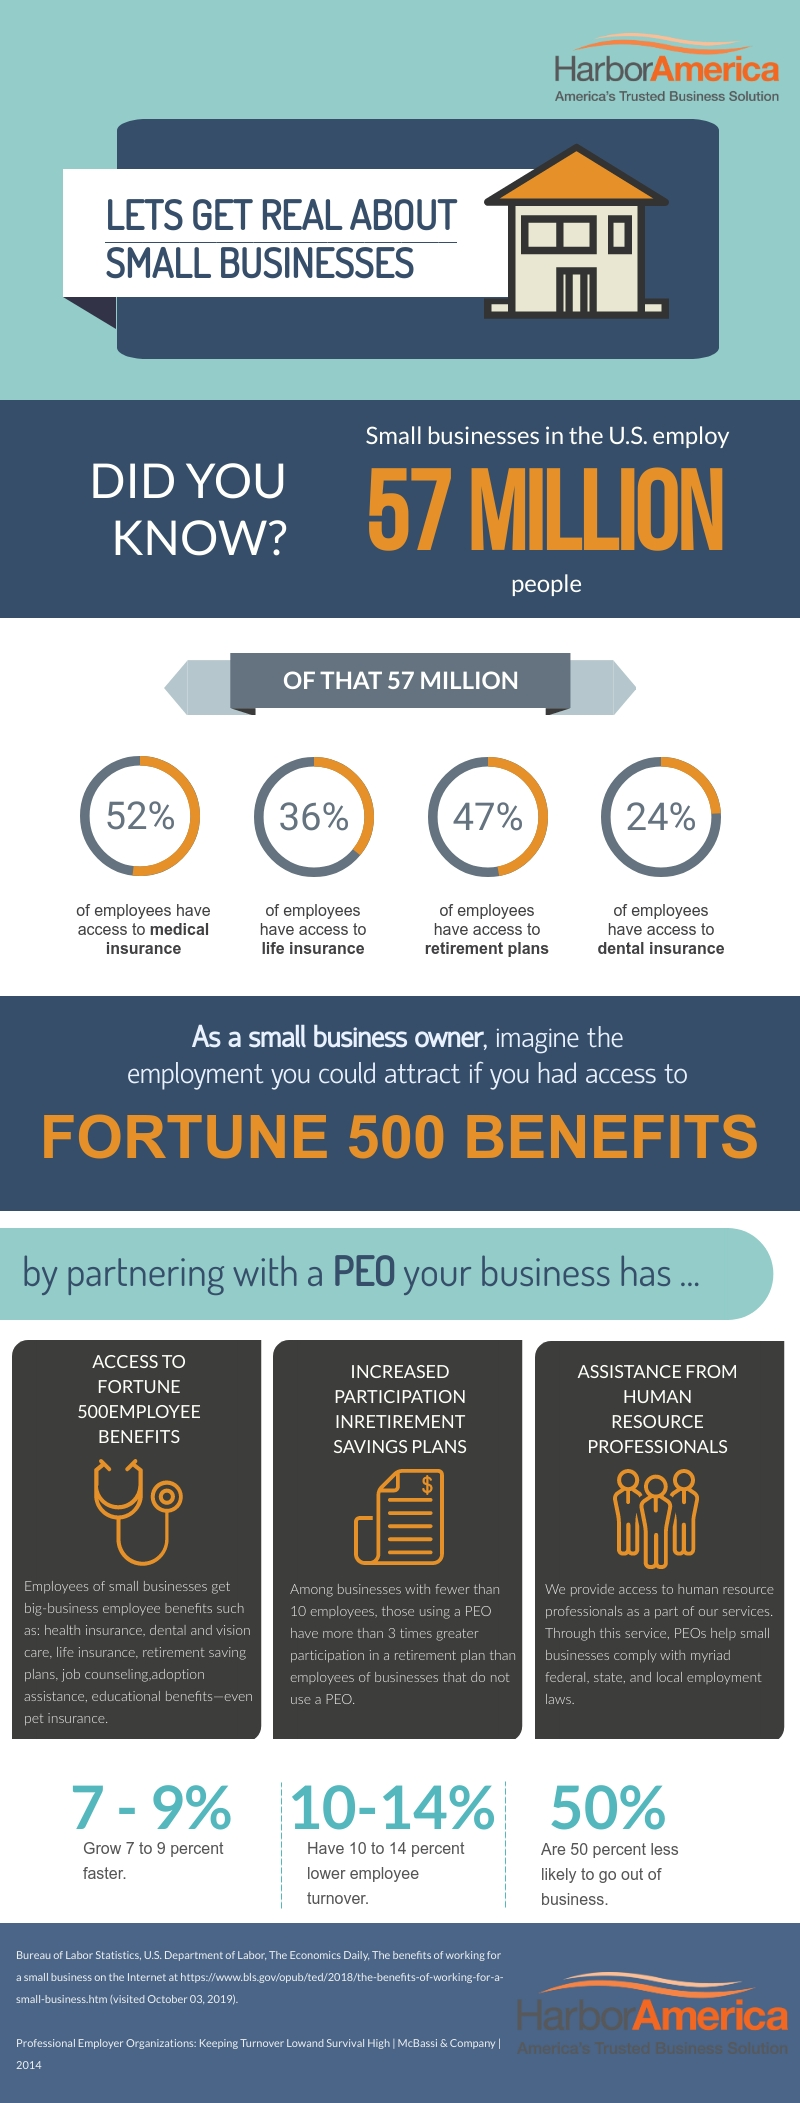 Small businesses can get access to the kinds of benefits Fortune 500 companies have by working with a Professional Employer Organization, or PEO.